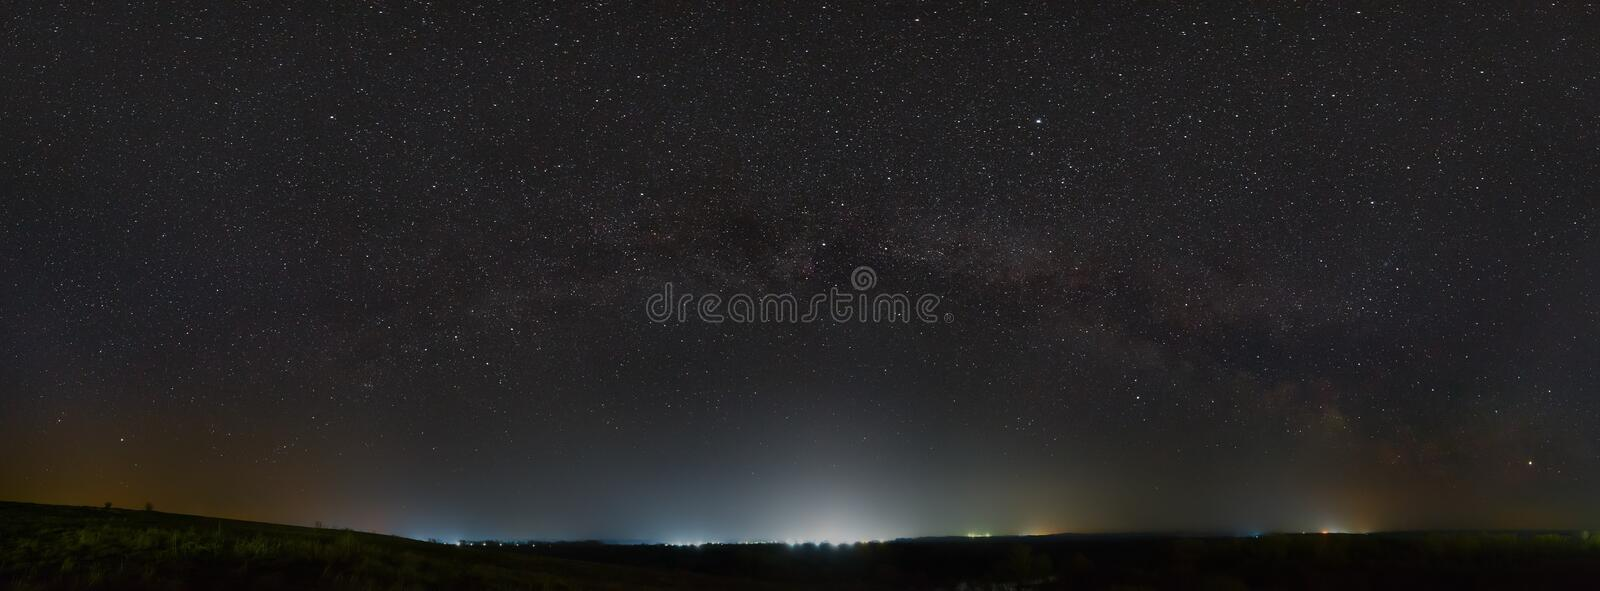 Stars of the Milky Way in the night sky. Light pollution from street lamps above the horizon royalty free stock images